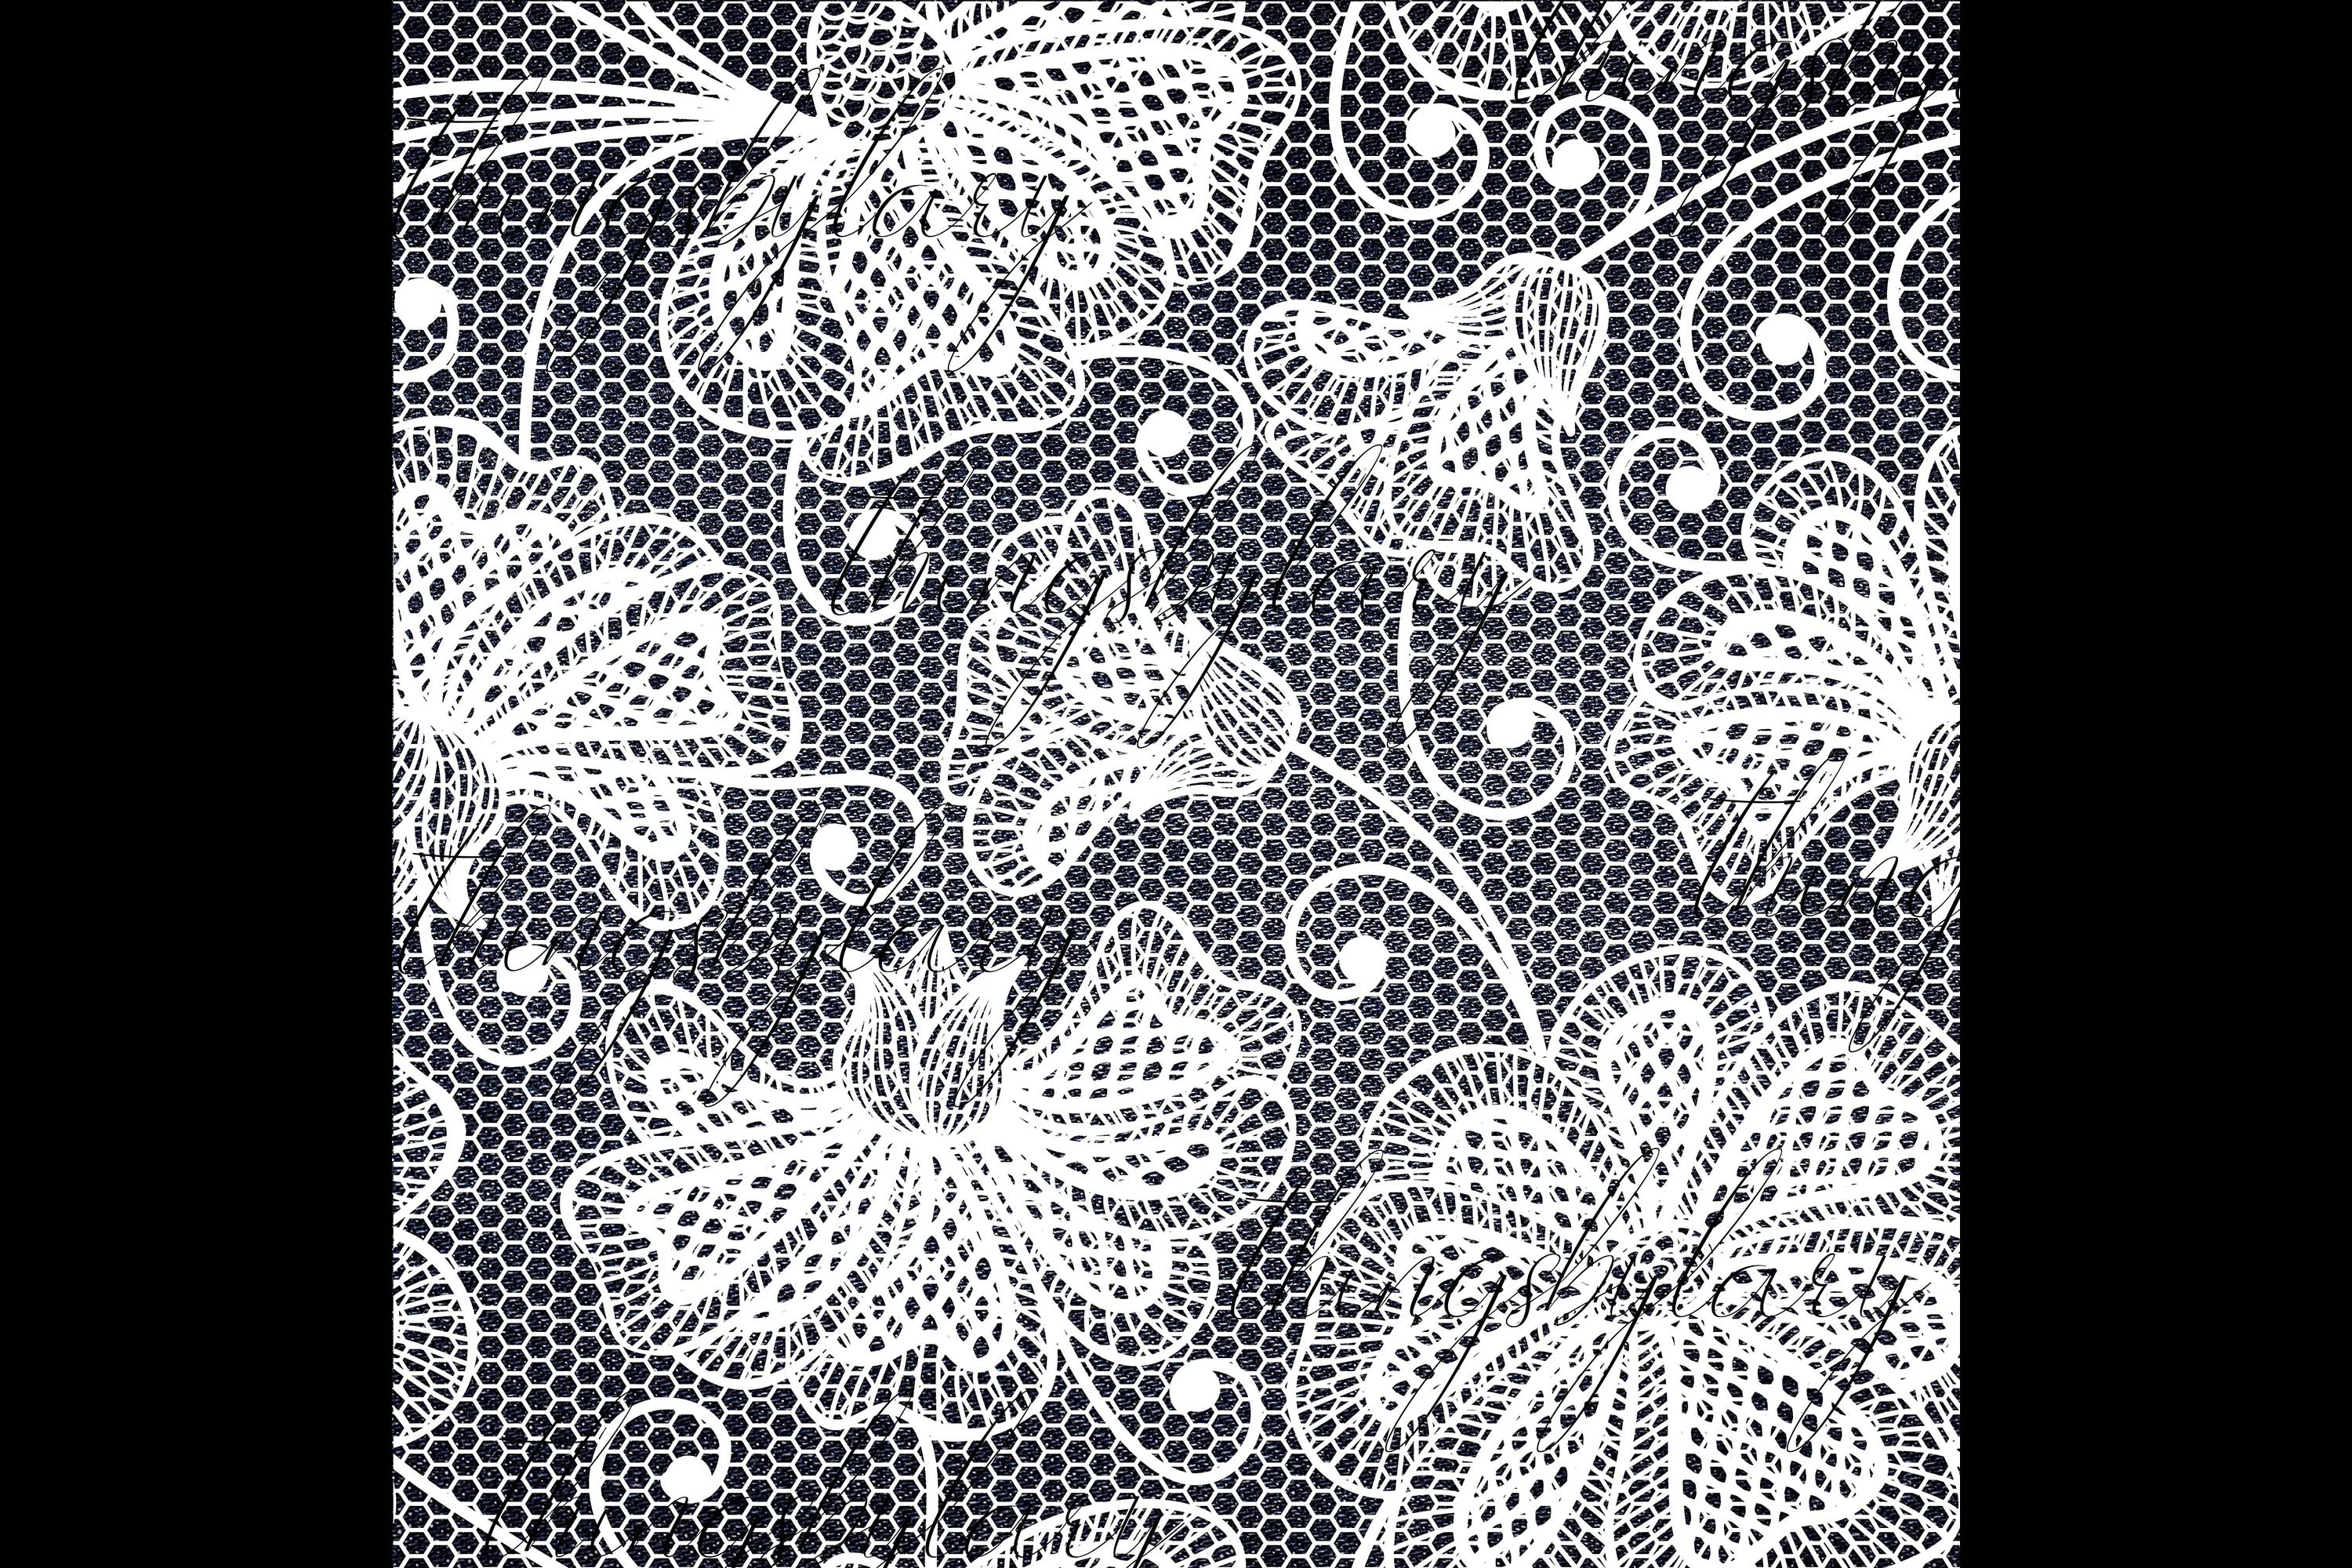 27 White Lace Border Frame Overlay Transparent Images PNG example image 3